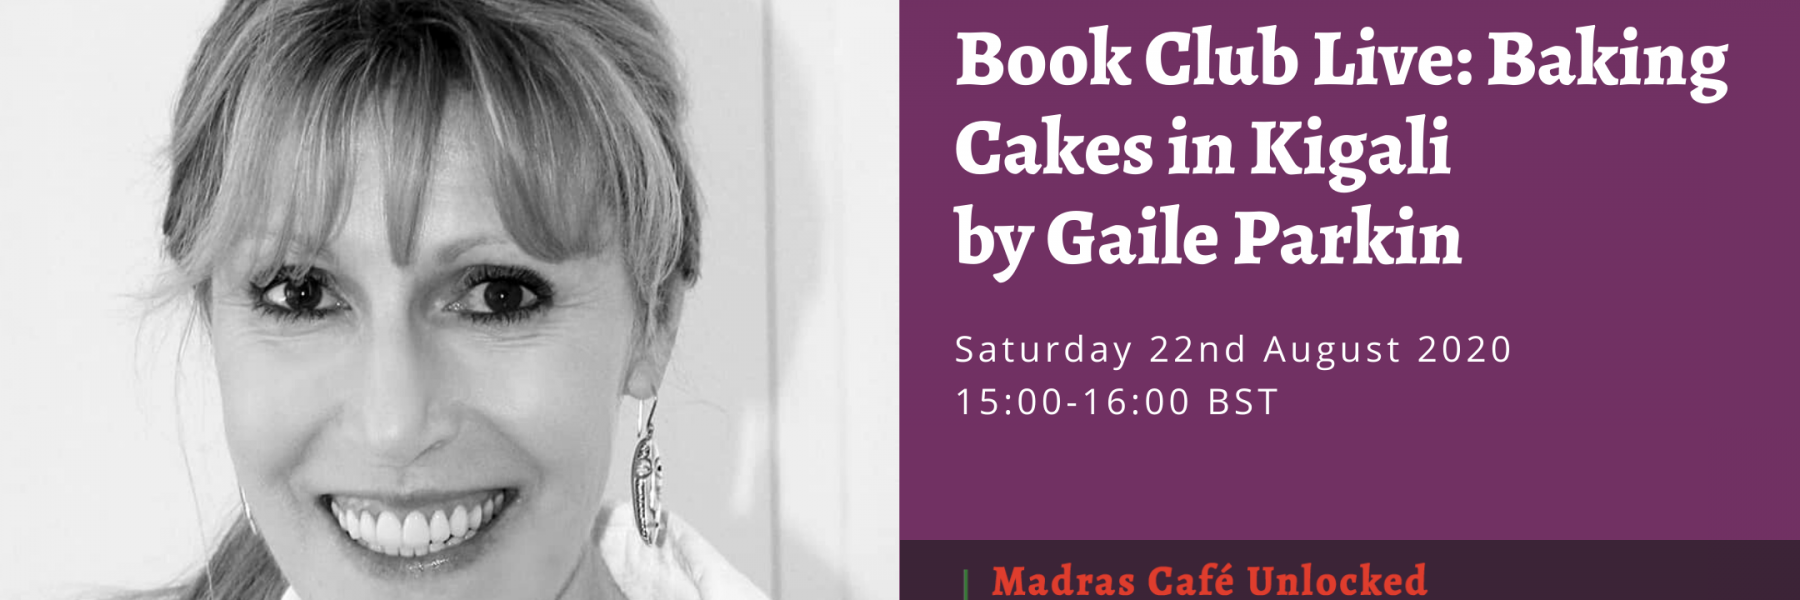 Book Club with author Gaile Parkin discussing her novel, Baking Cakes in Kigali. 3